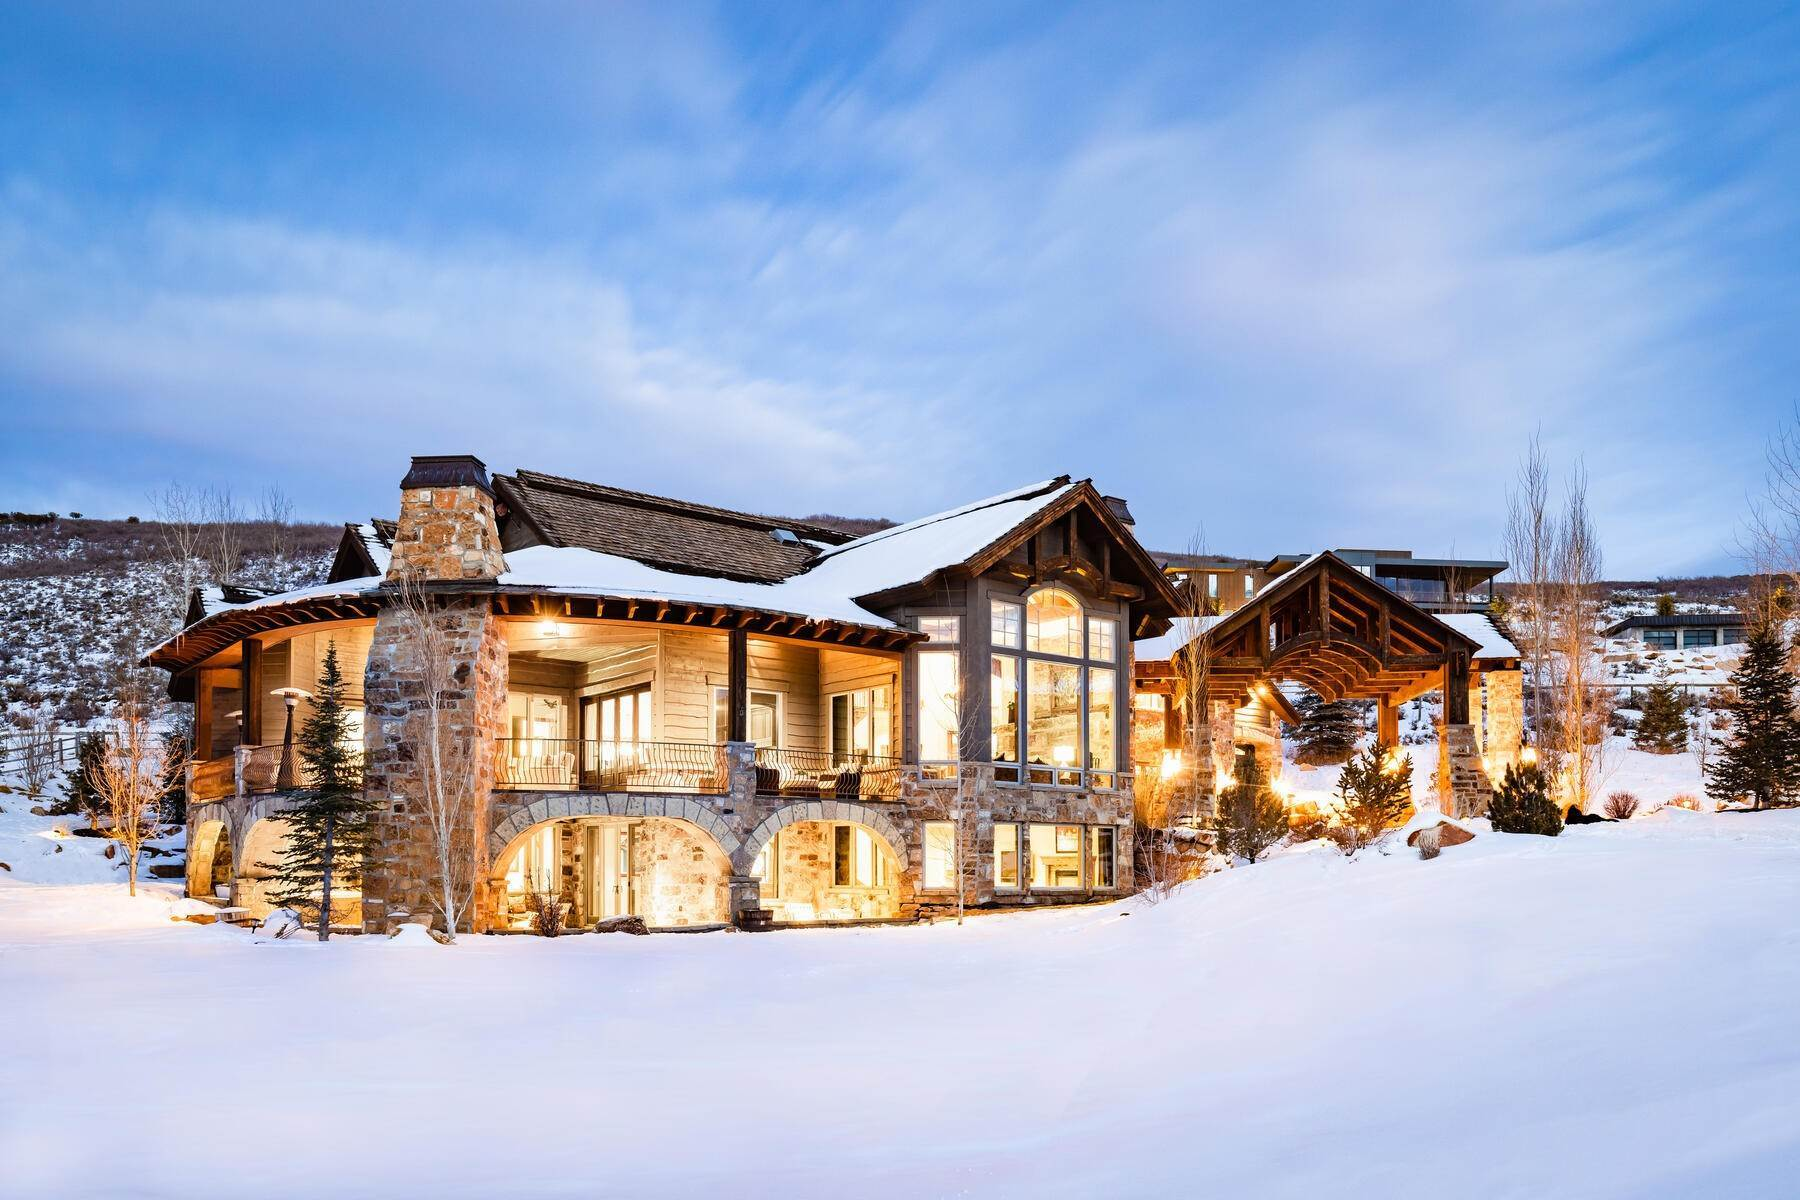 2. Single Family Homes for Sale at Rare Ranch Creek Estates Home Boasts over 3 Acres with Unparalleled Views 4400 N Ranch Creek Ln Park City, Utah 84098 United States